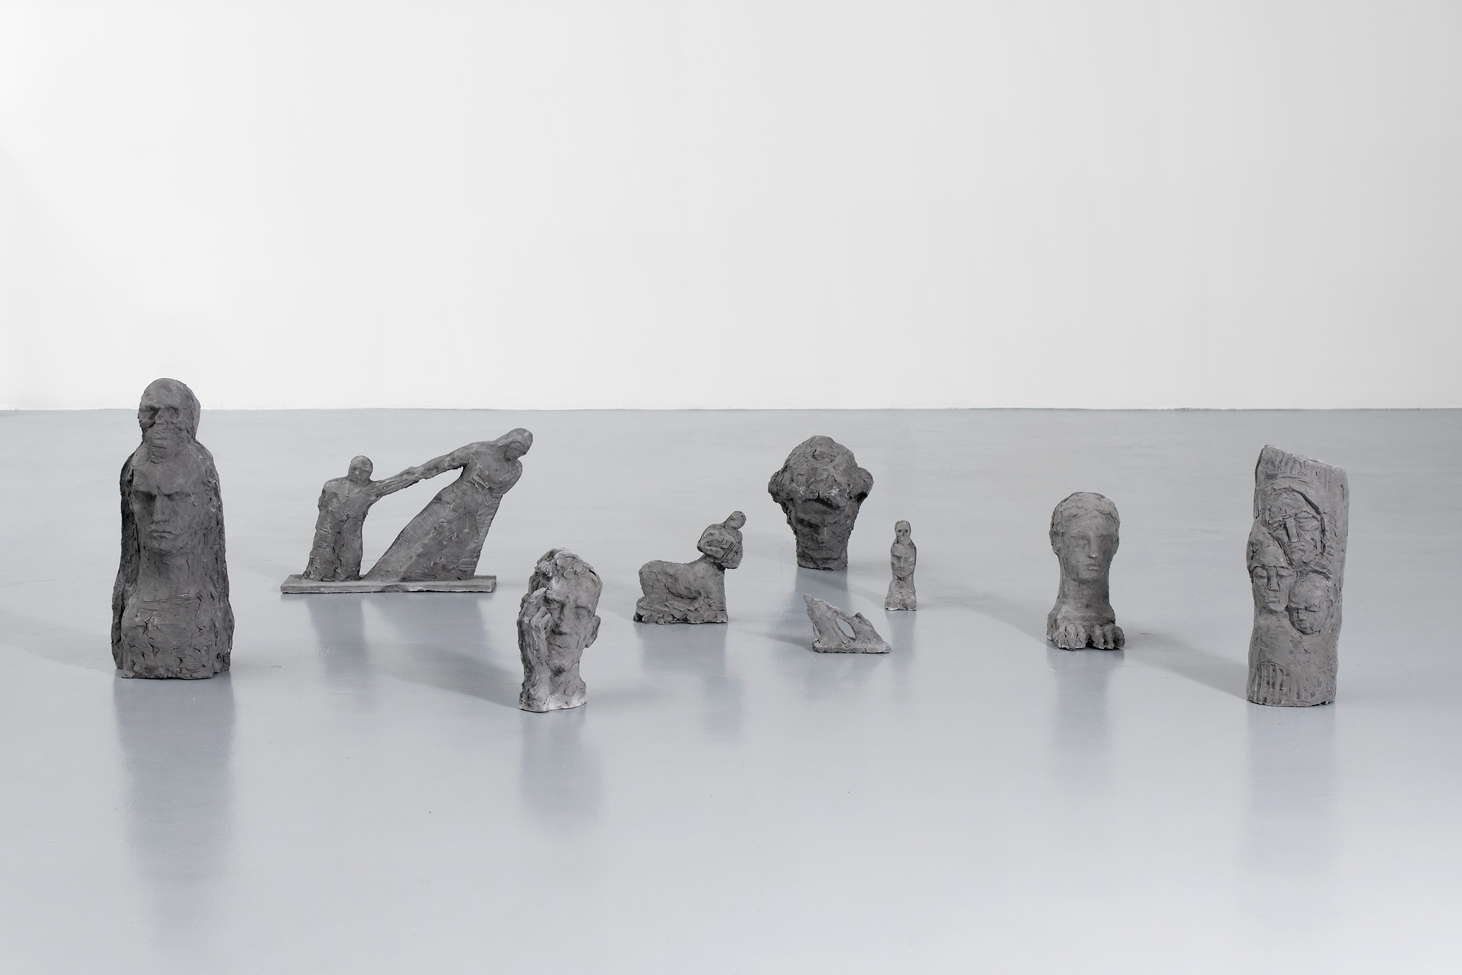 Forgotten statues , Ciprian Mureșan, 2020, Edition 2/5, 9 statues, resin, Dimension variable  — Galerie Éric Hussenot, Paris